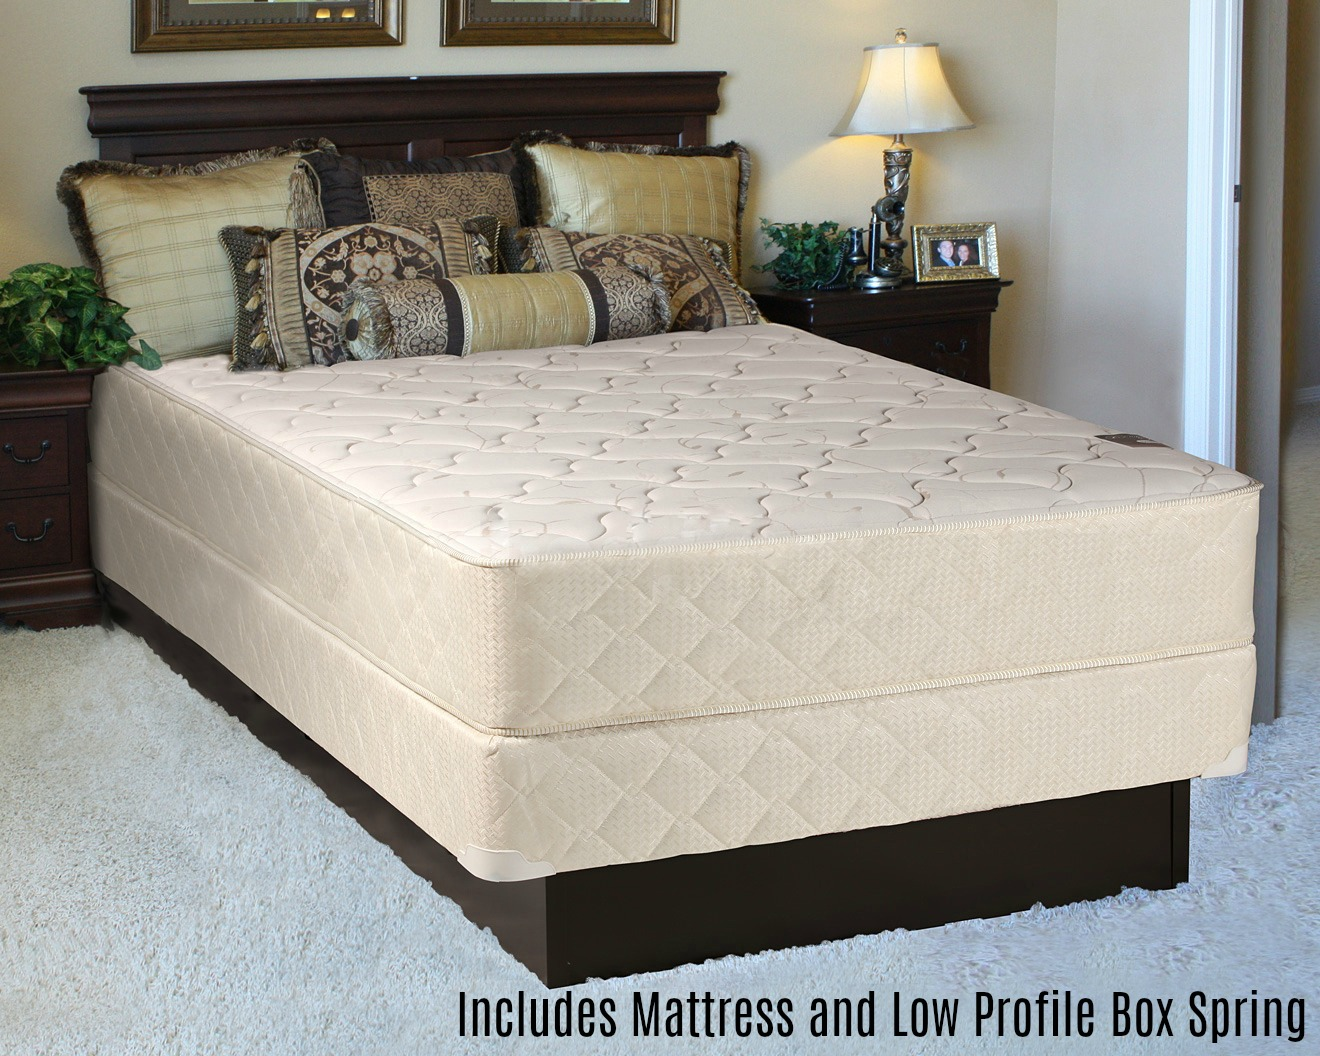 "Spring Solution Fully Assembled Orthopedic Back Support Long Lasting 10"" Mattress and 5"" Box Spring... by Comfort Bedding"